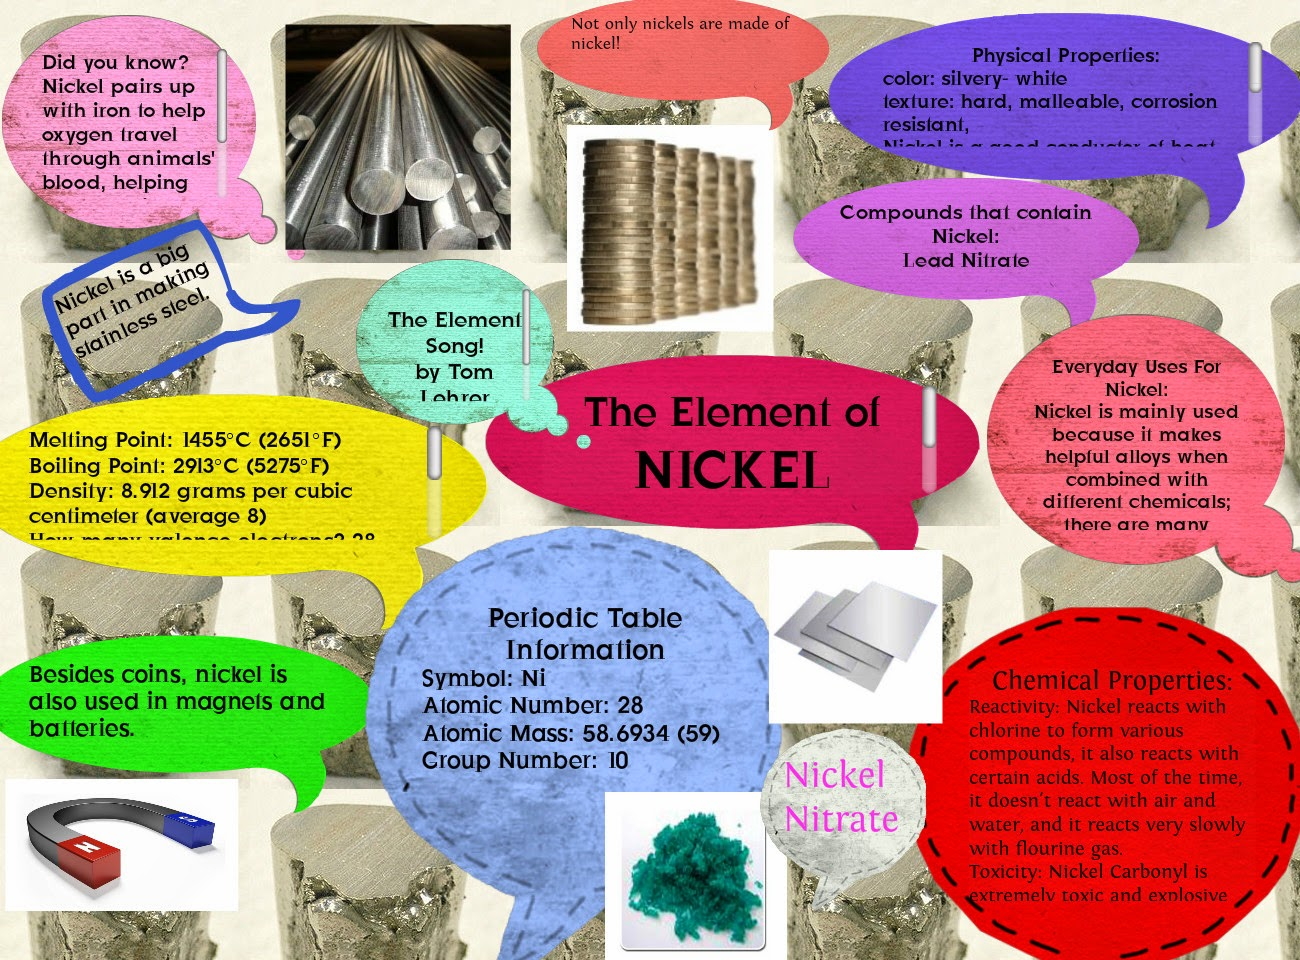 Commodity Trading News And Technical Analysis Reports : Nickel in